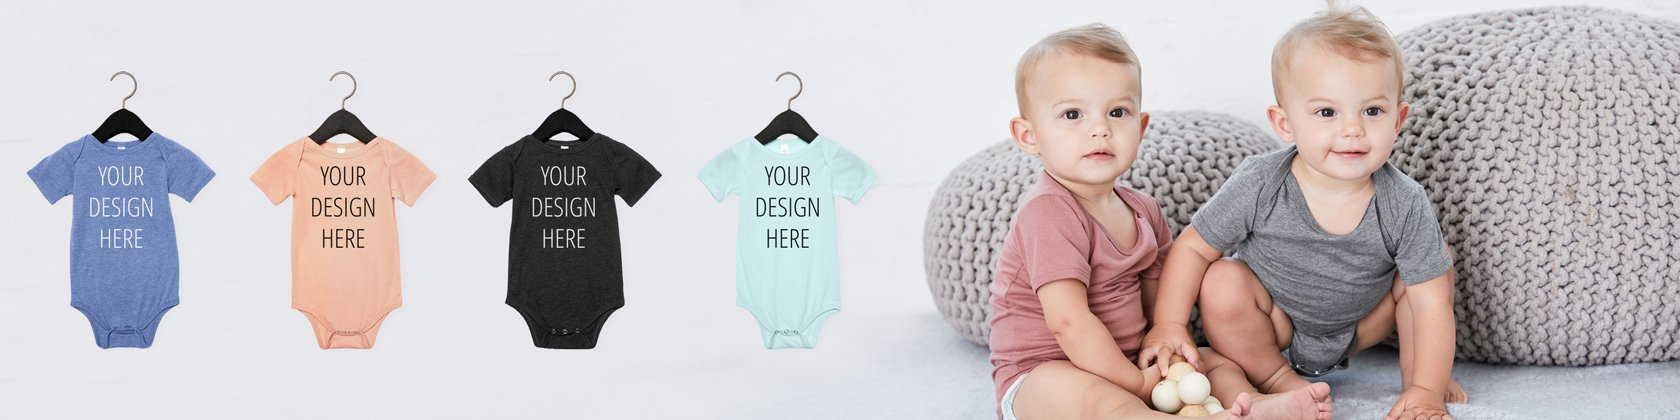 2f9f89678f5 Custom Onesies, Personalized Baby One Pieces